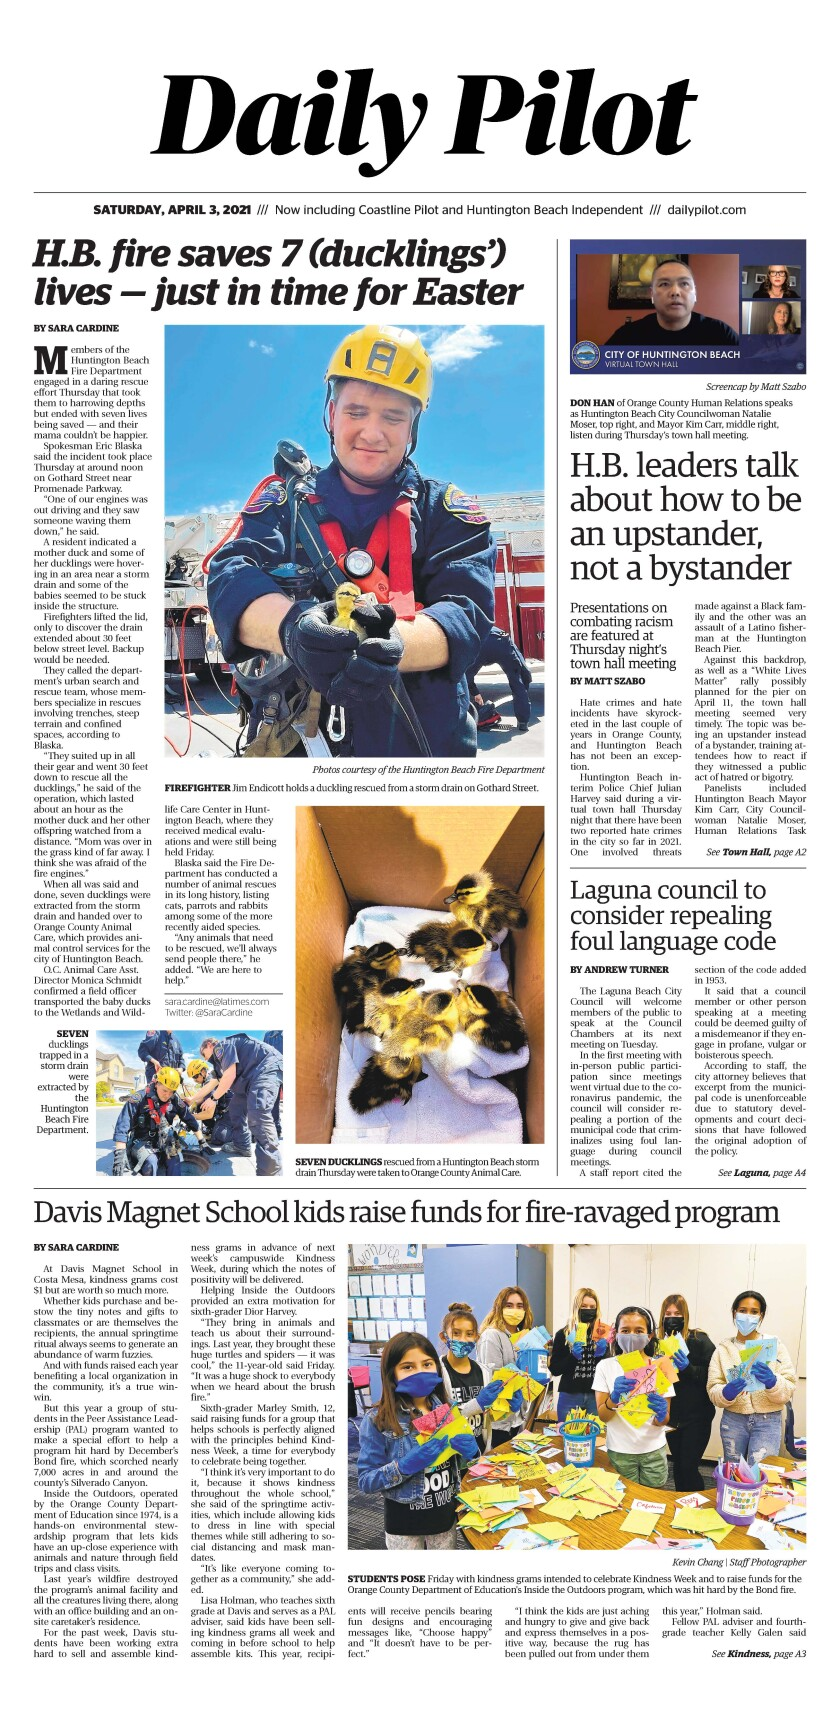 Front page of Daily Pilot e-newspaper for Saturday, April 4, 2021.